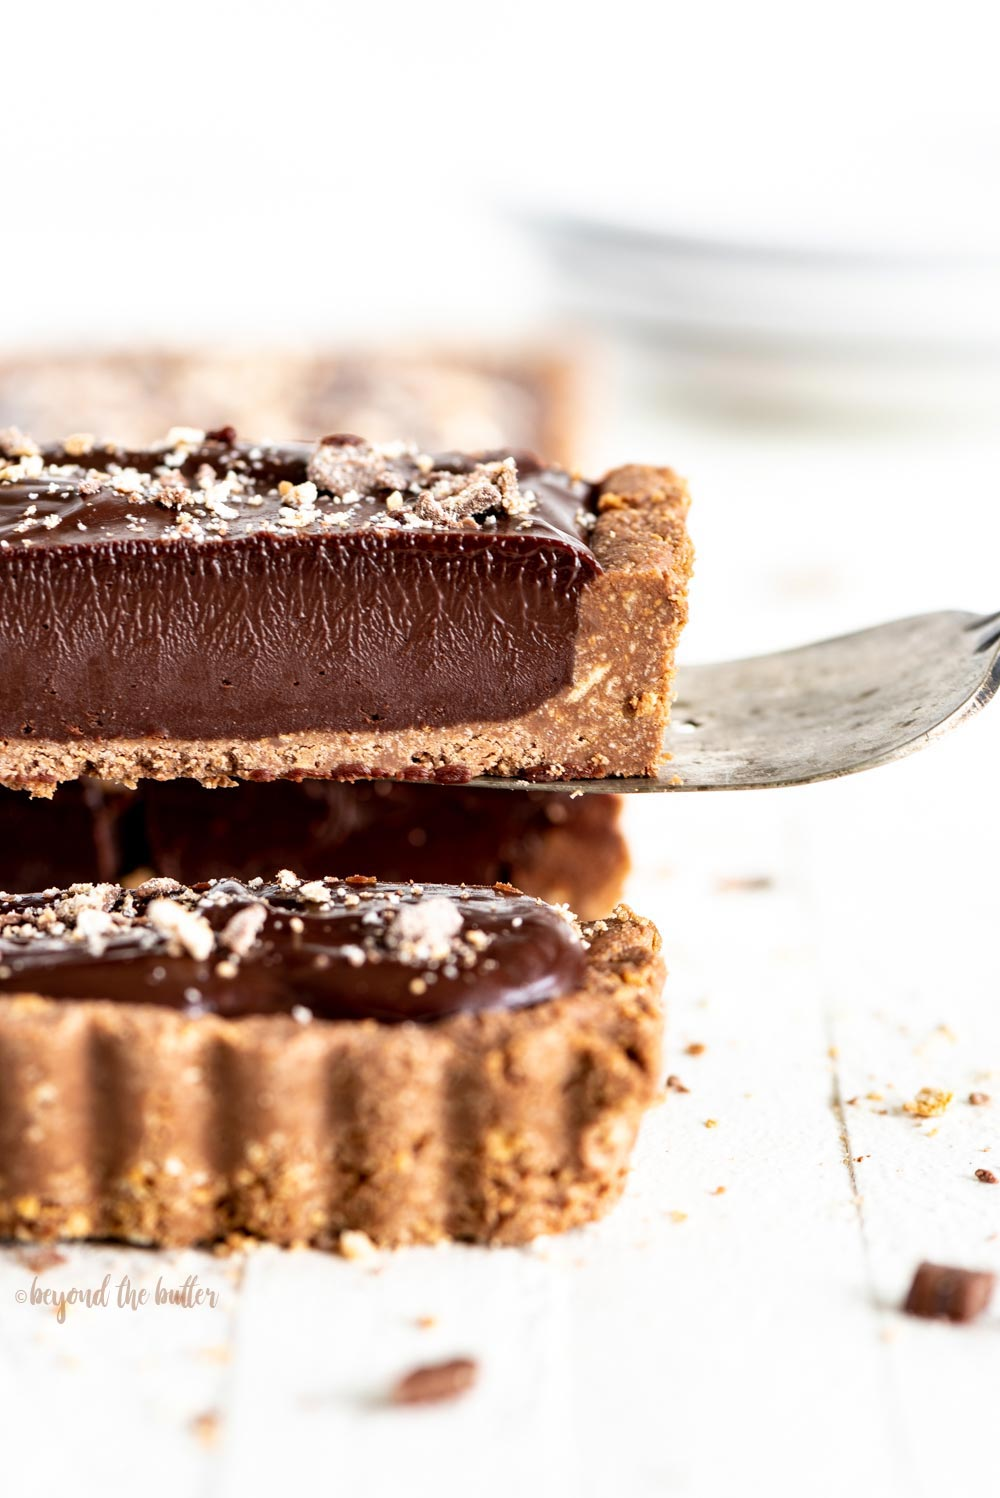 No-bake Dark Chocolate Tart | Close-up photo of a slice of no-bake dark chocolate tart being lifted up with a serving utensil | Image and Copyright Policy: © Beyond the Butter, LLC